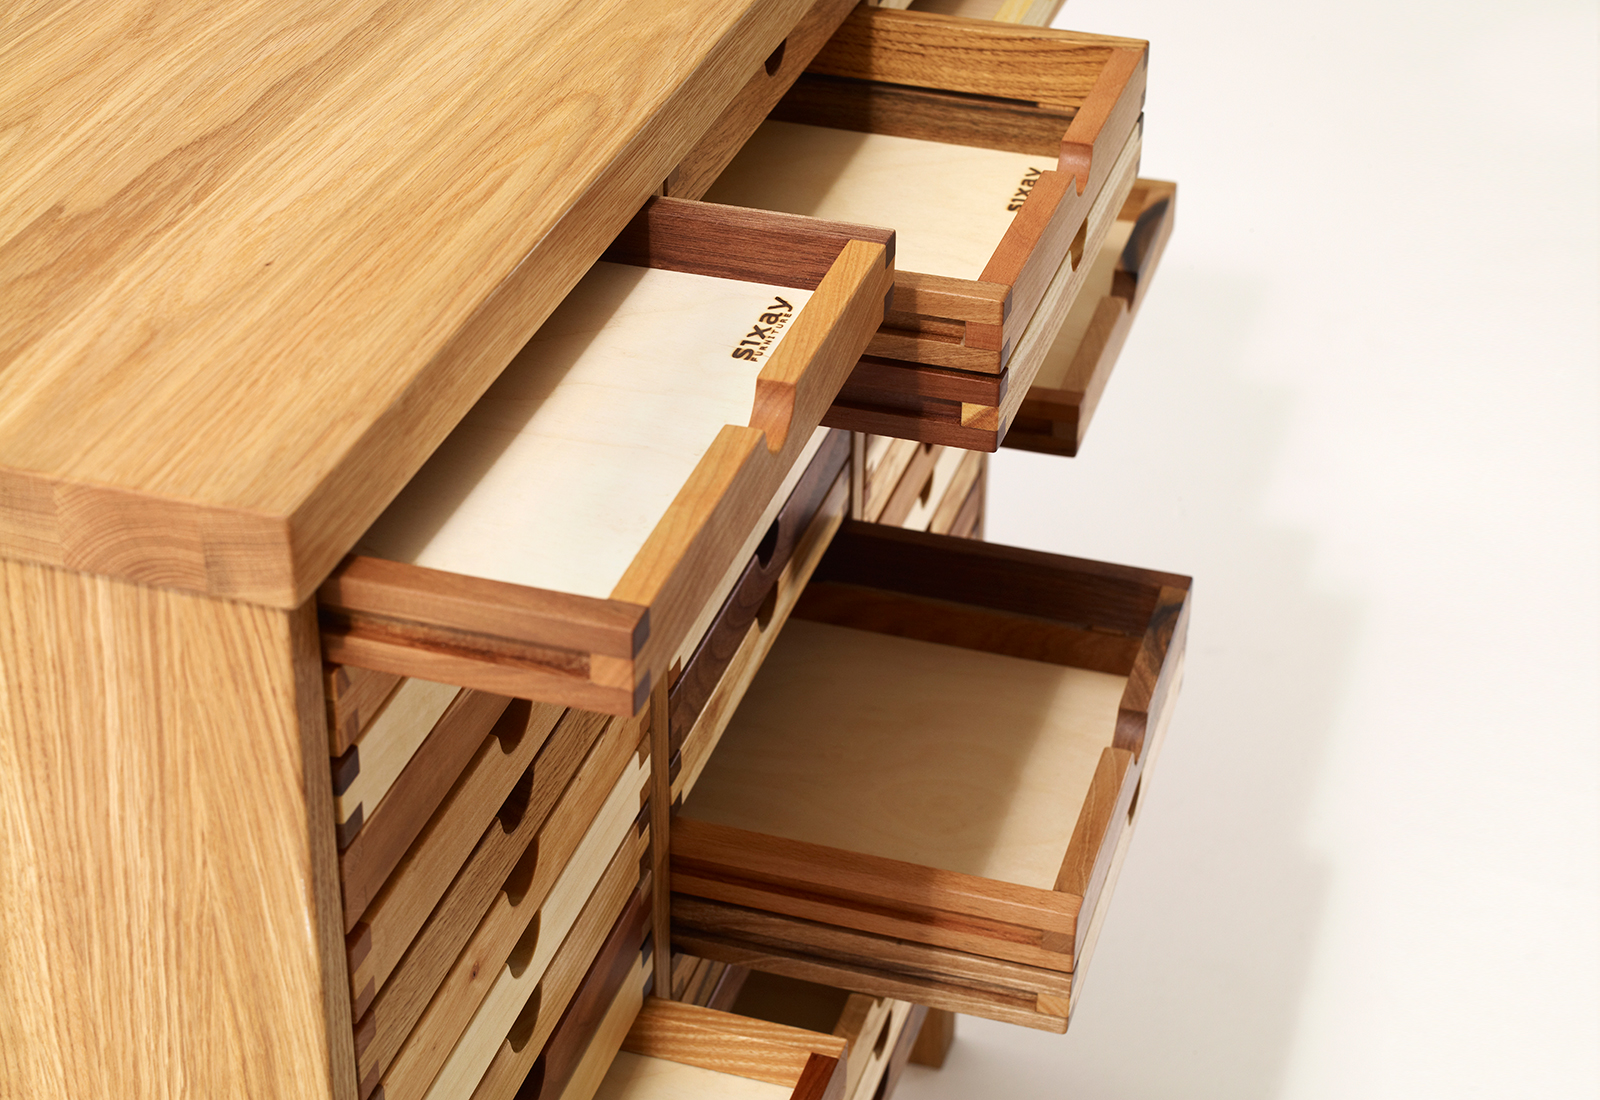 SIXtematic chest of drawers